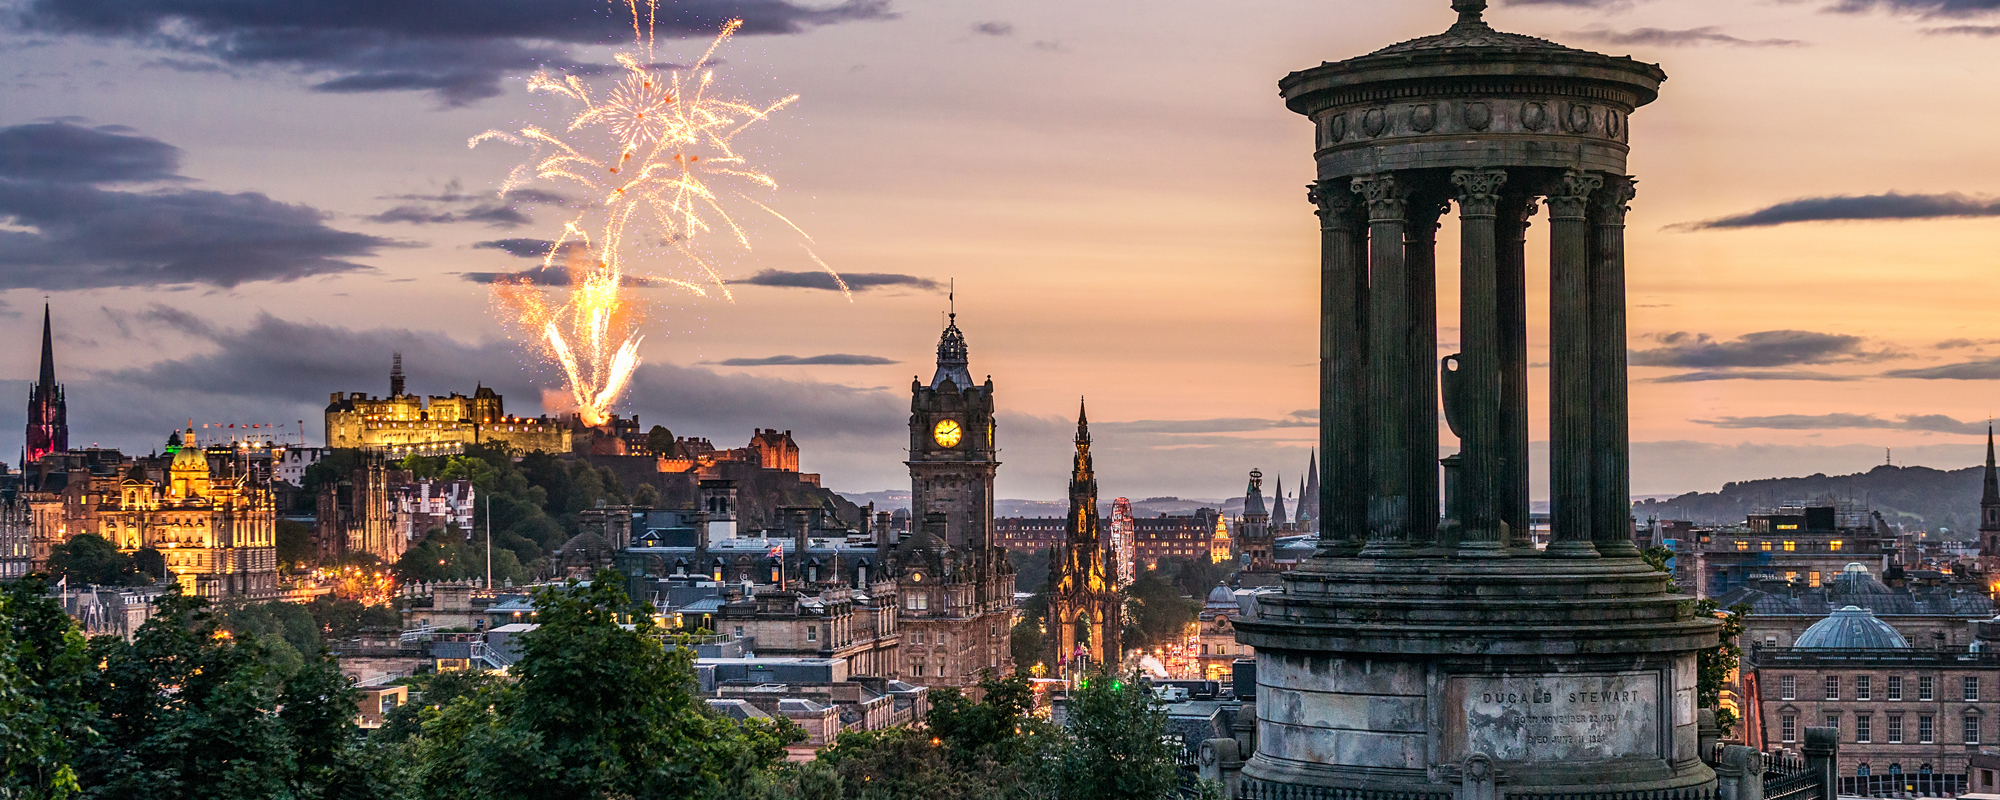 Edinburgh-dusk-skyline-2018-HERO